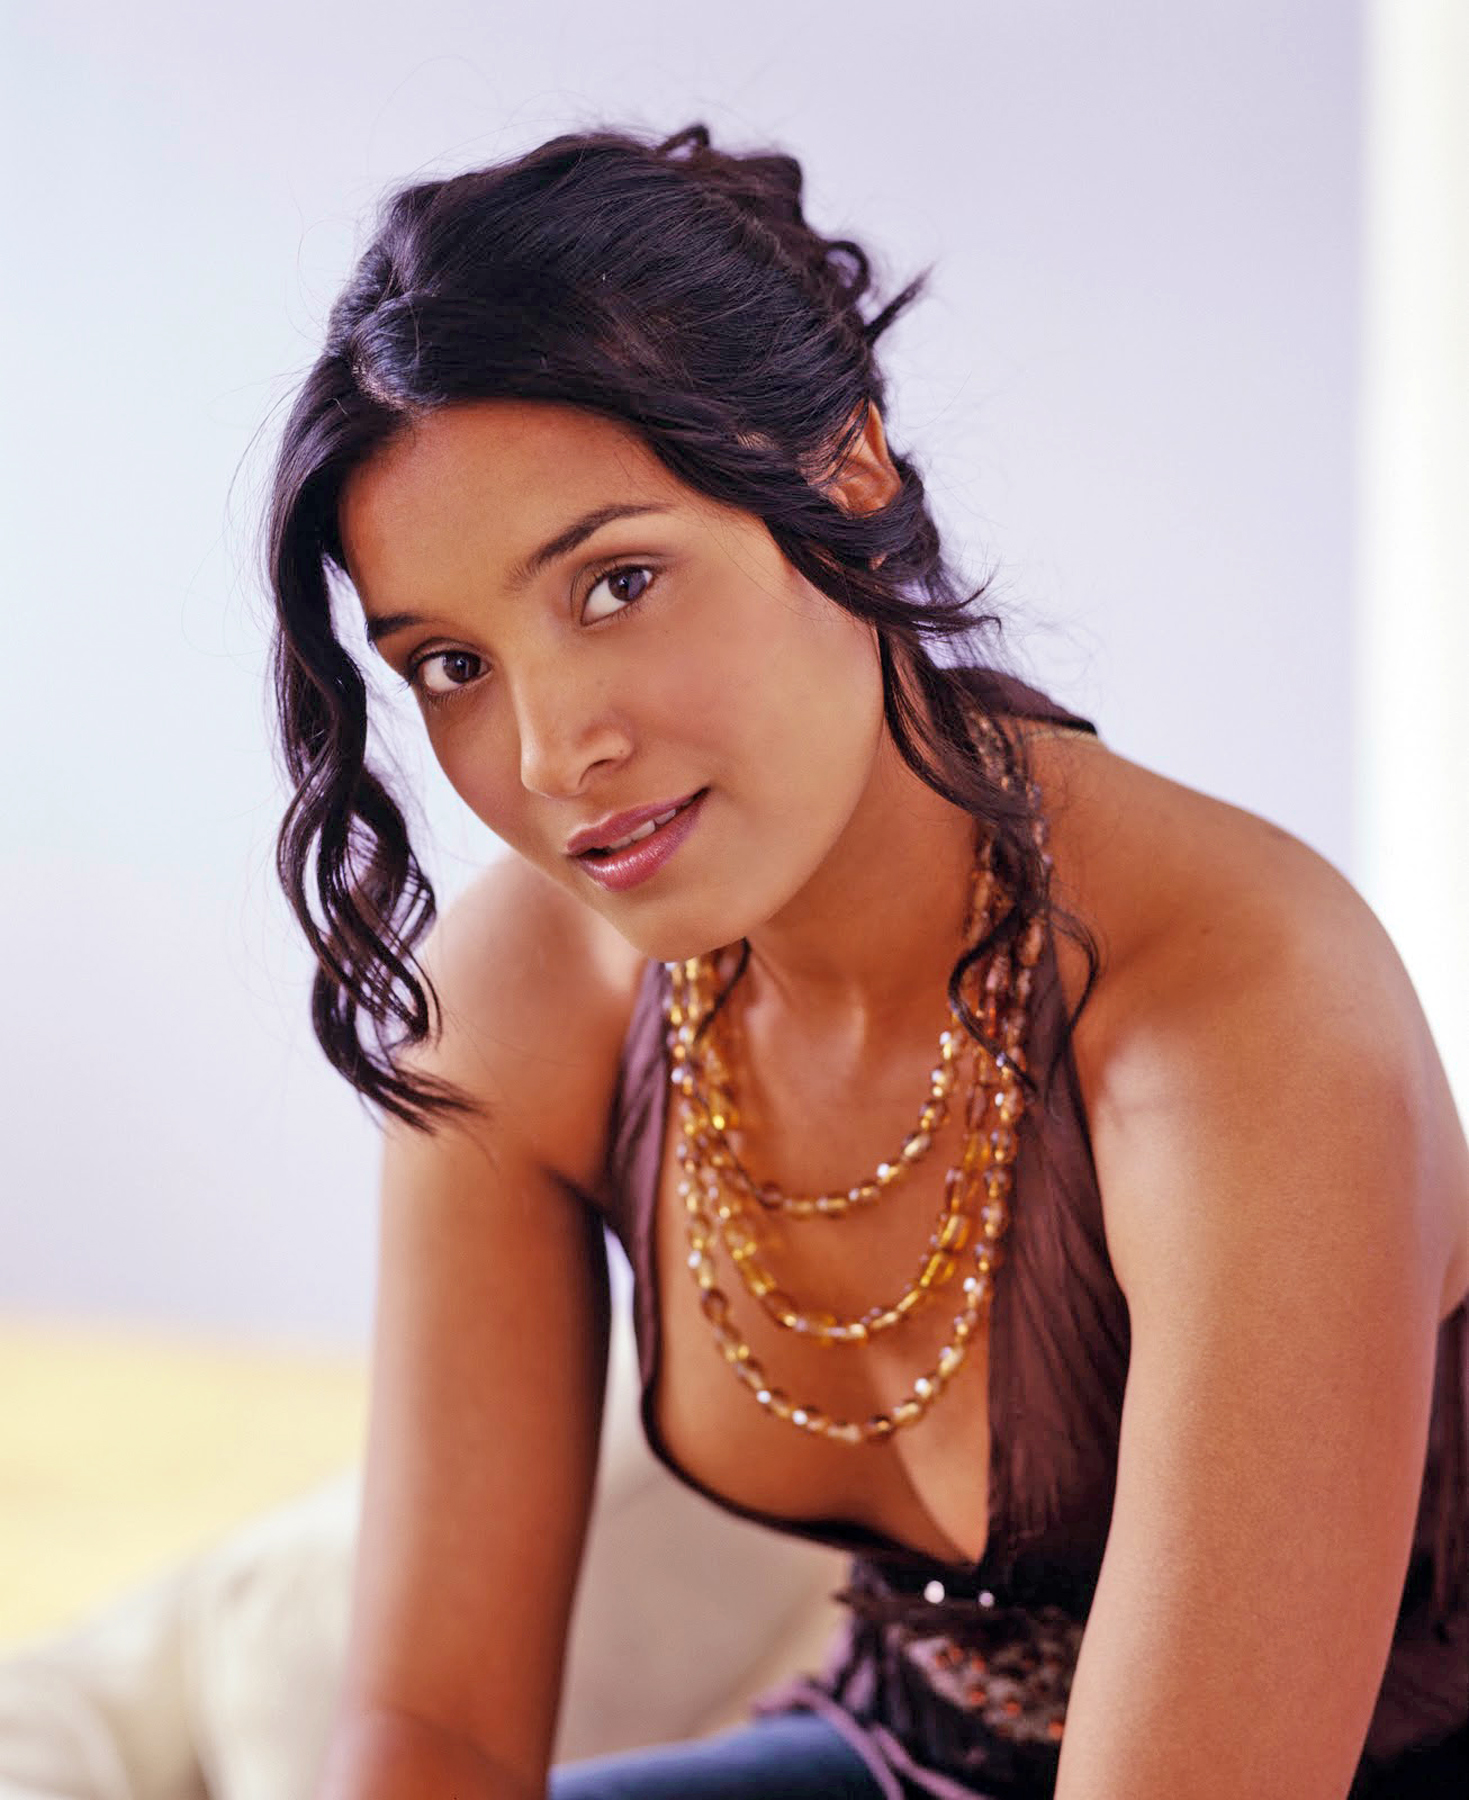 Discussion on this topic: Jessica Dublin, shelley-conn/